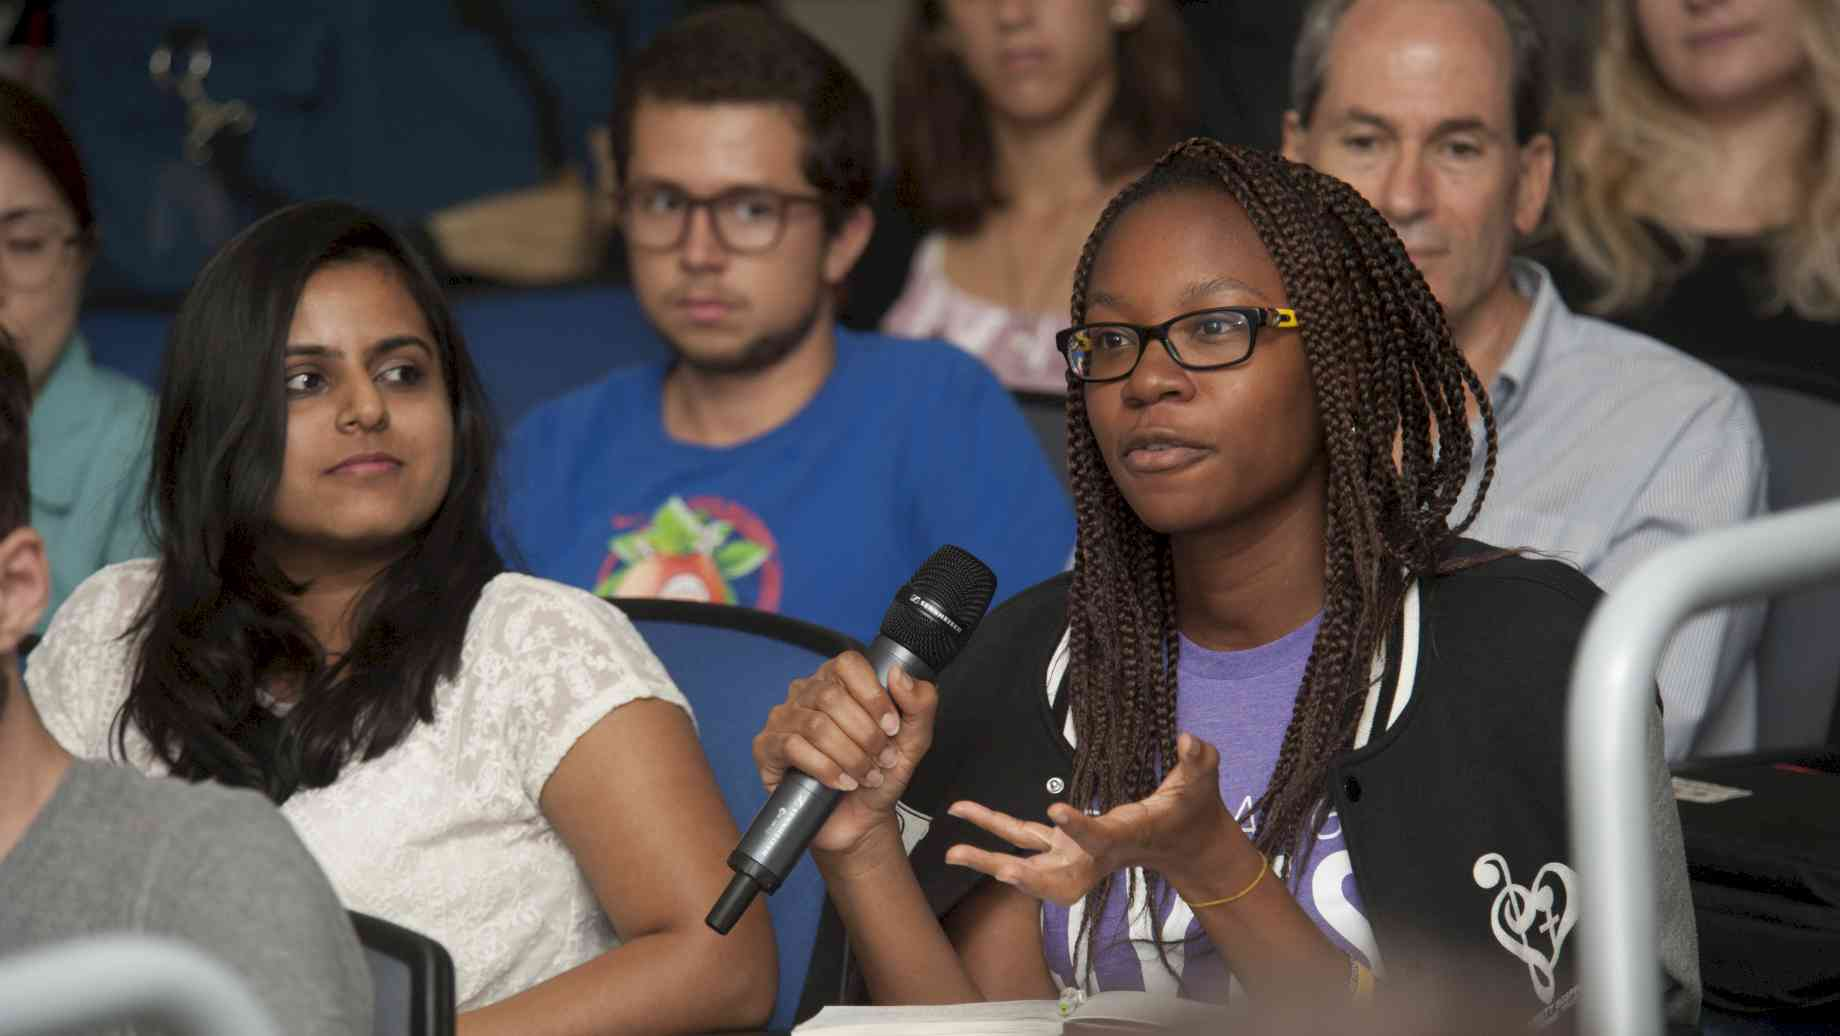 Audience member asks a question during Dr. Fernanda Pitta's visit to UF